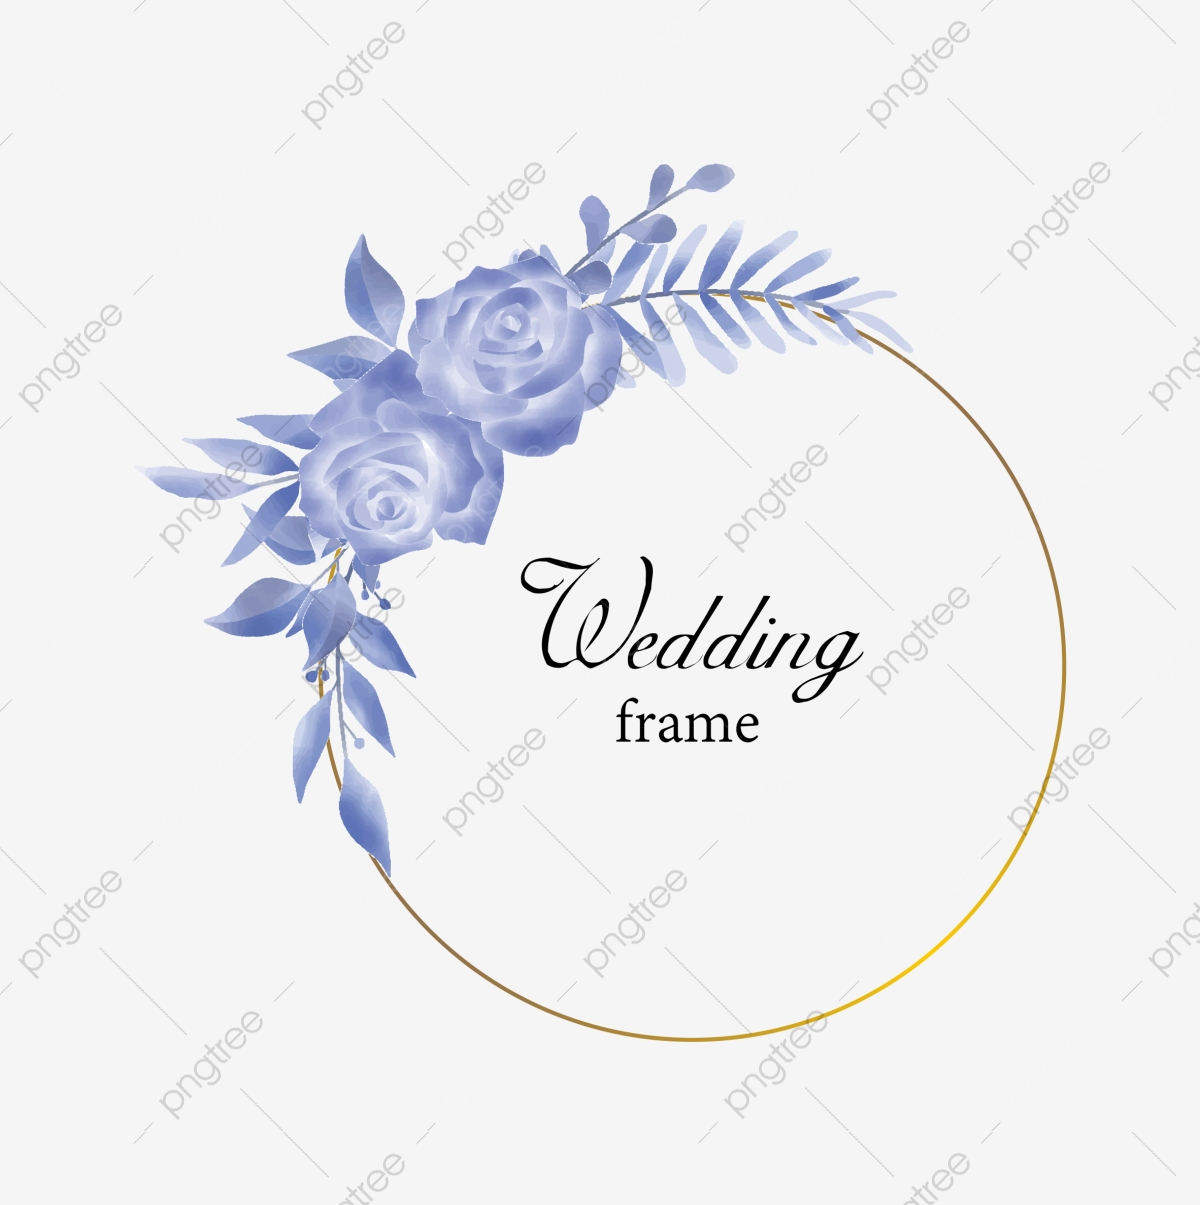 Elegant Wedding Invitation Frame Template With Rose Flowers And Blue Watercolor Style Leaves Background Flower Frame Png And Vector With Transparent Background For Free Download